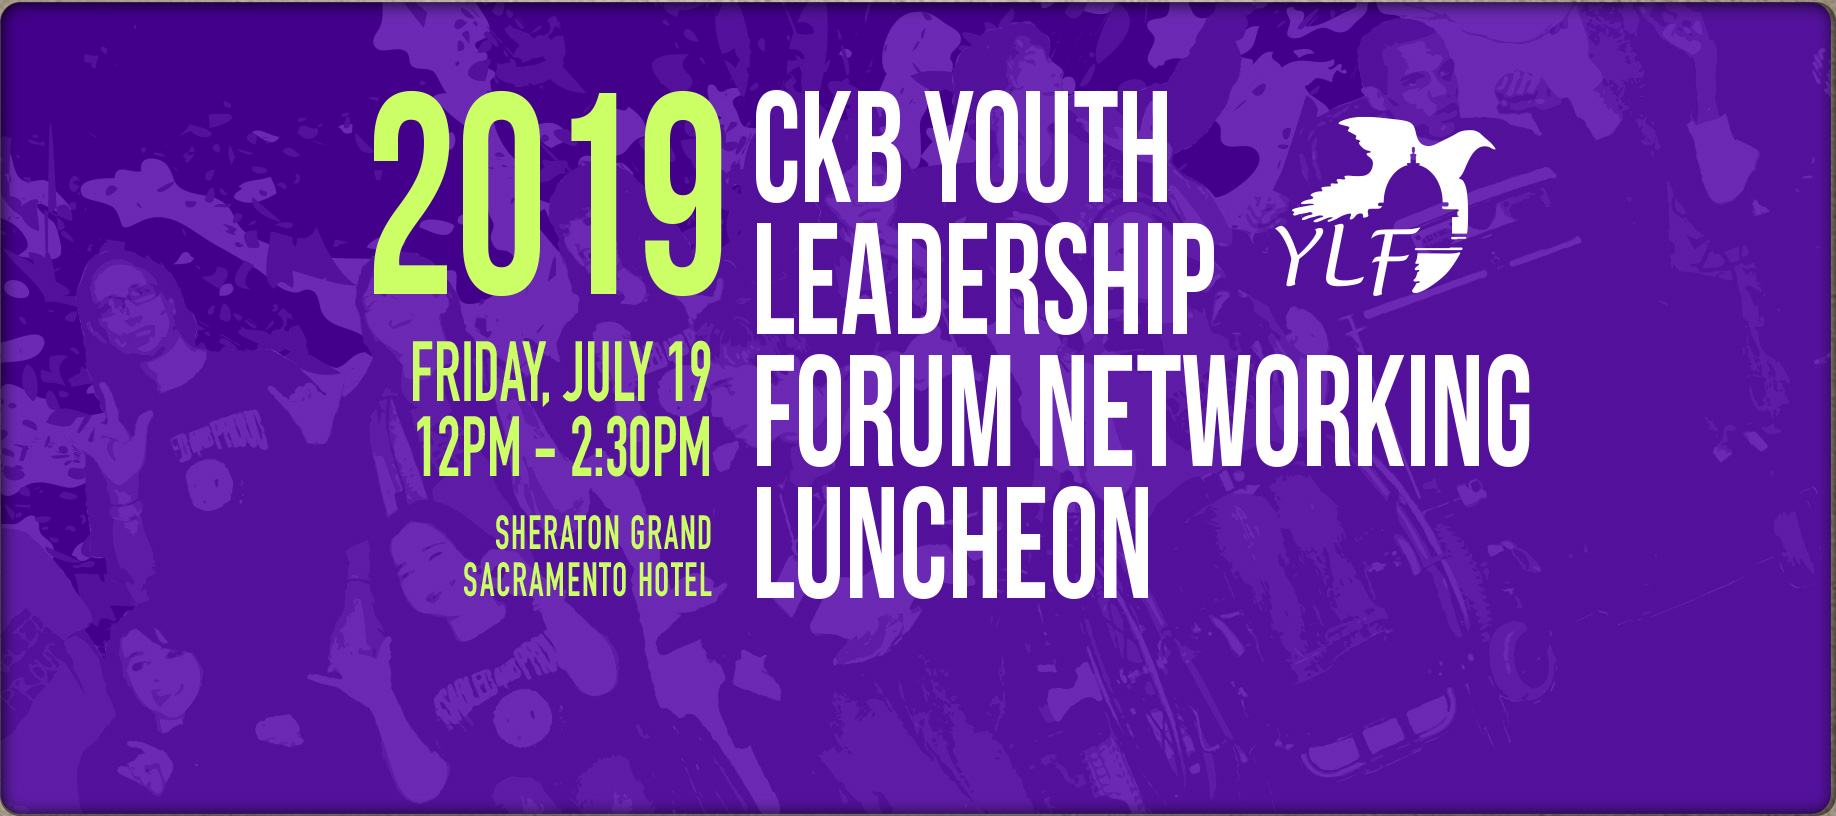 Banner of Banner of 2019 CKB Youth Leadership Forum Networking Luncheon. Friday, July 19 - 12pm to 2:30pm. Sheraton Grand Sacramento Hotel.